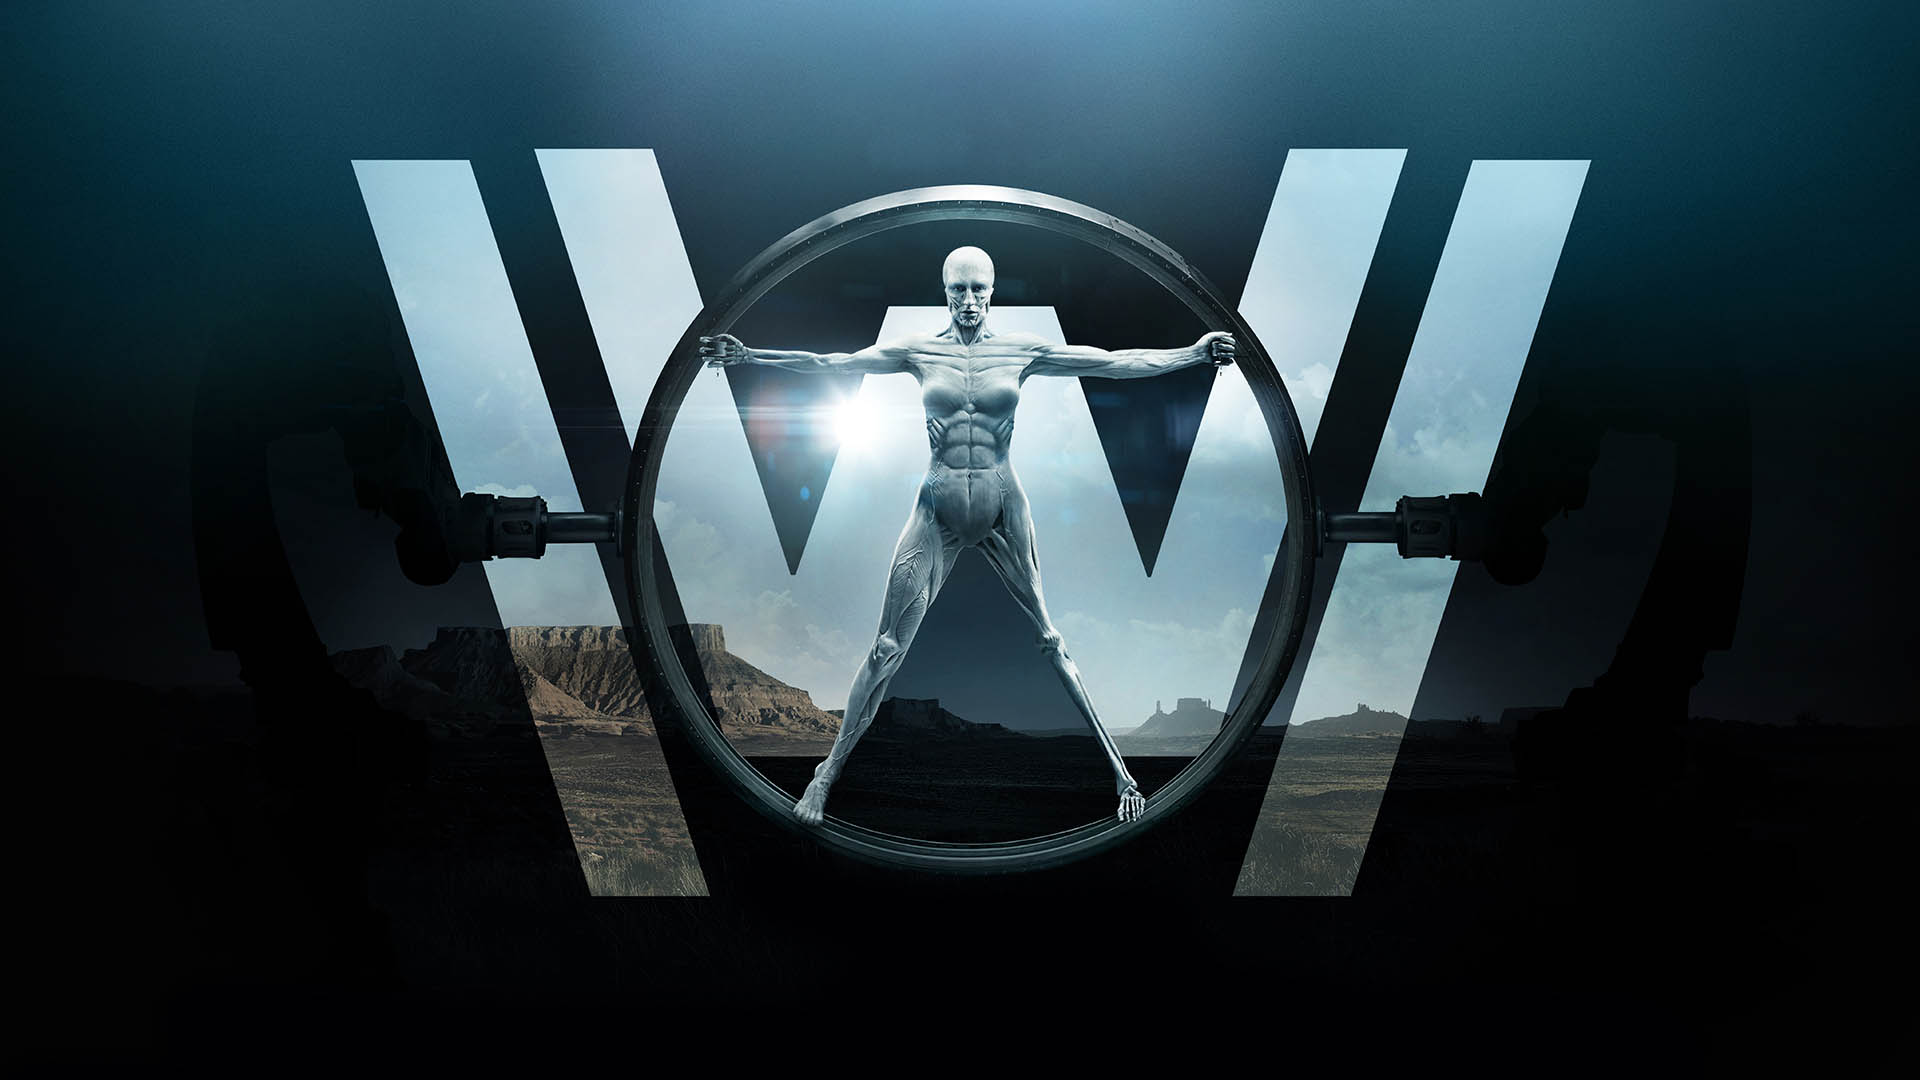 HBO Westworld poster